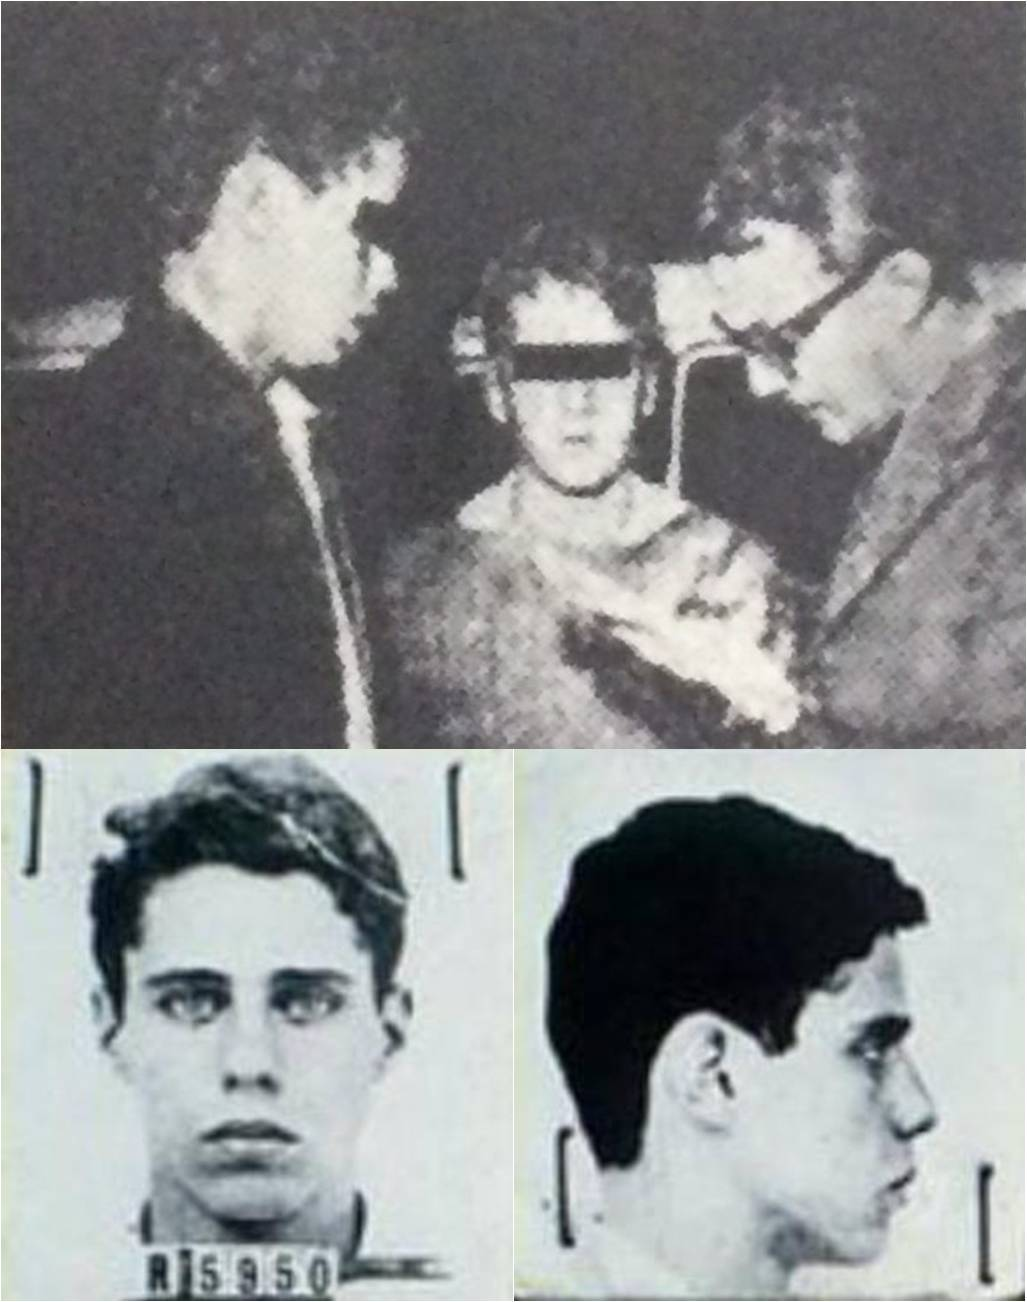 Police photographs of Chico Buarque, 17, upon his arrest in 1961